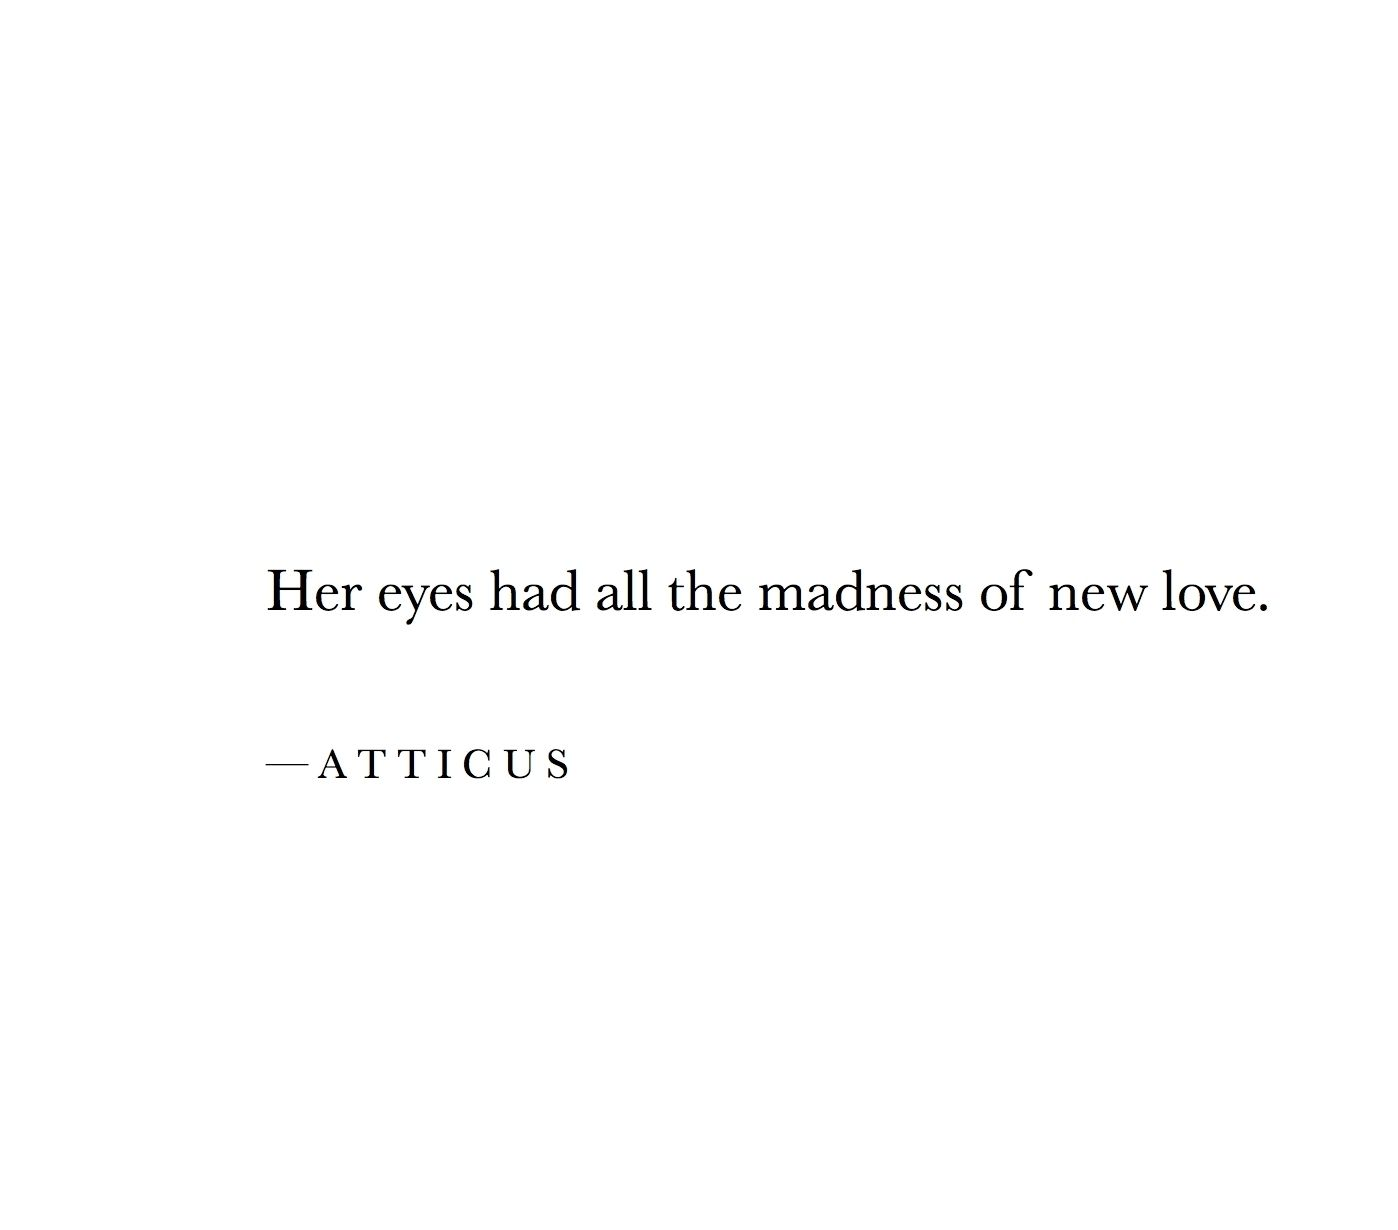 Her Eyes Atticuspoetry Atticus Love Madness Words Quotes Quotes About Her Eyes She Quotes